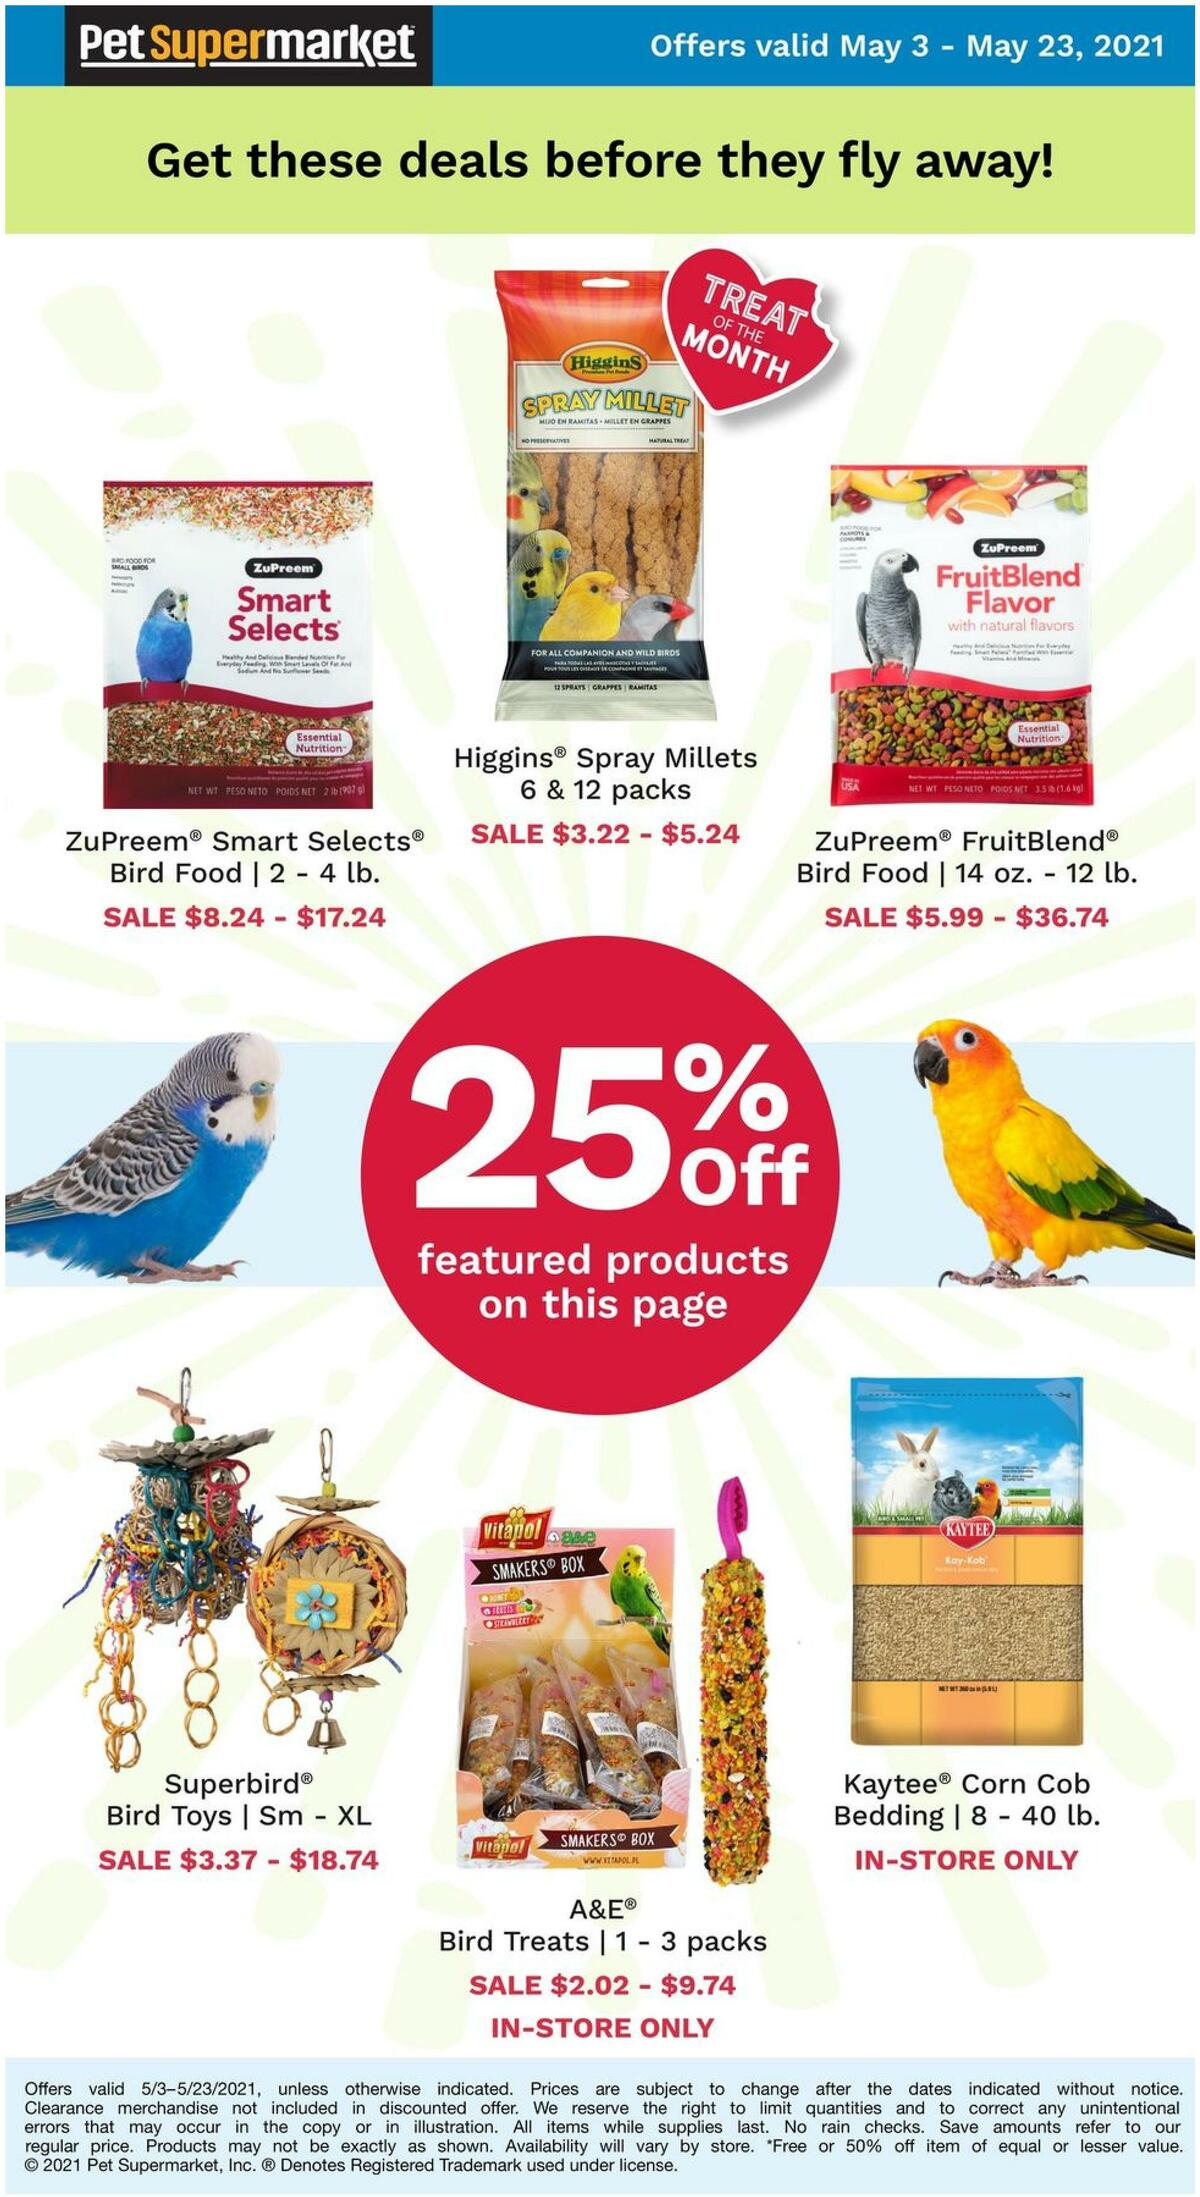 Pet Supermarket 25% Off Select Bird Items Weekly Ad from May 3